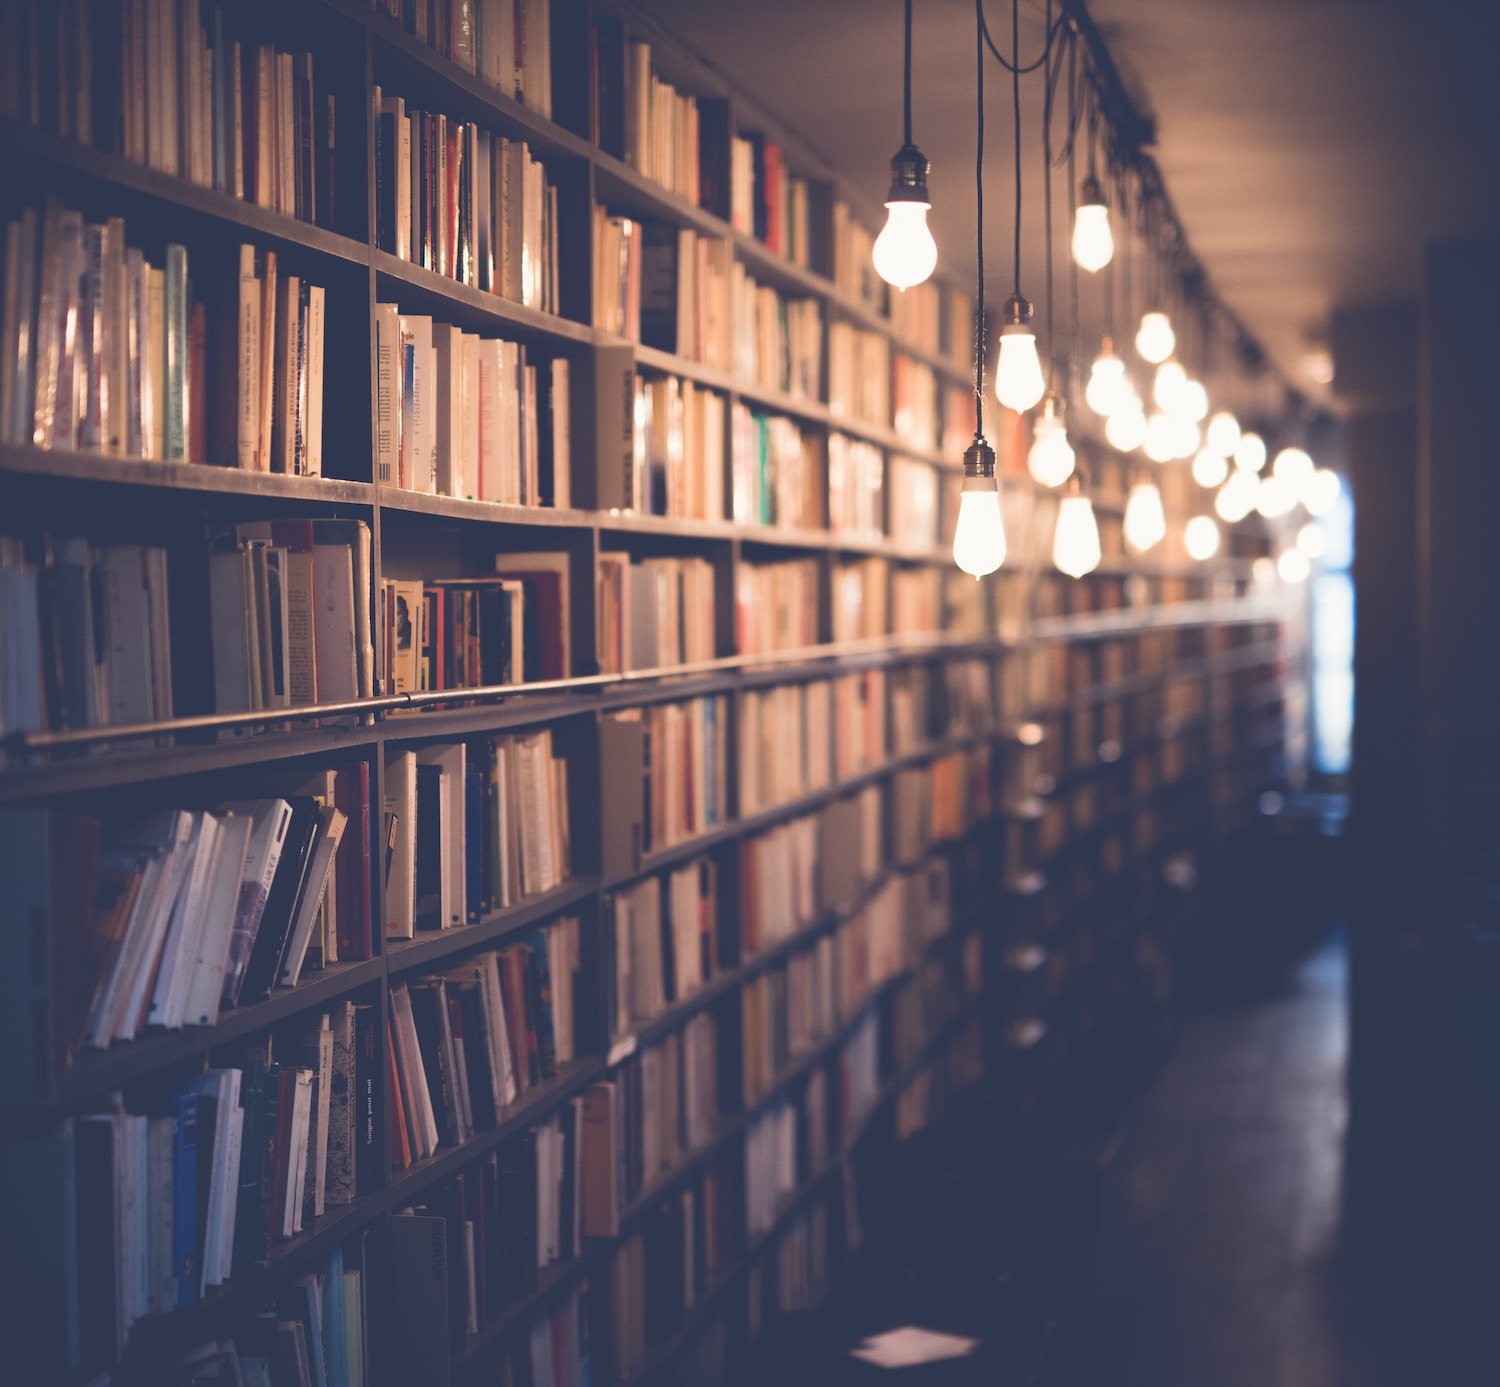 Library with lights